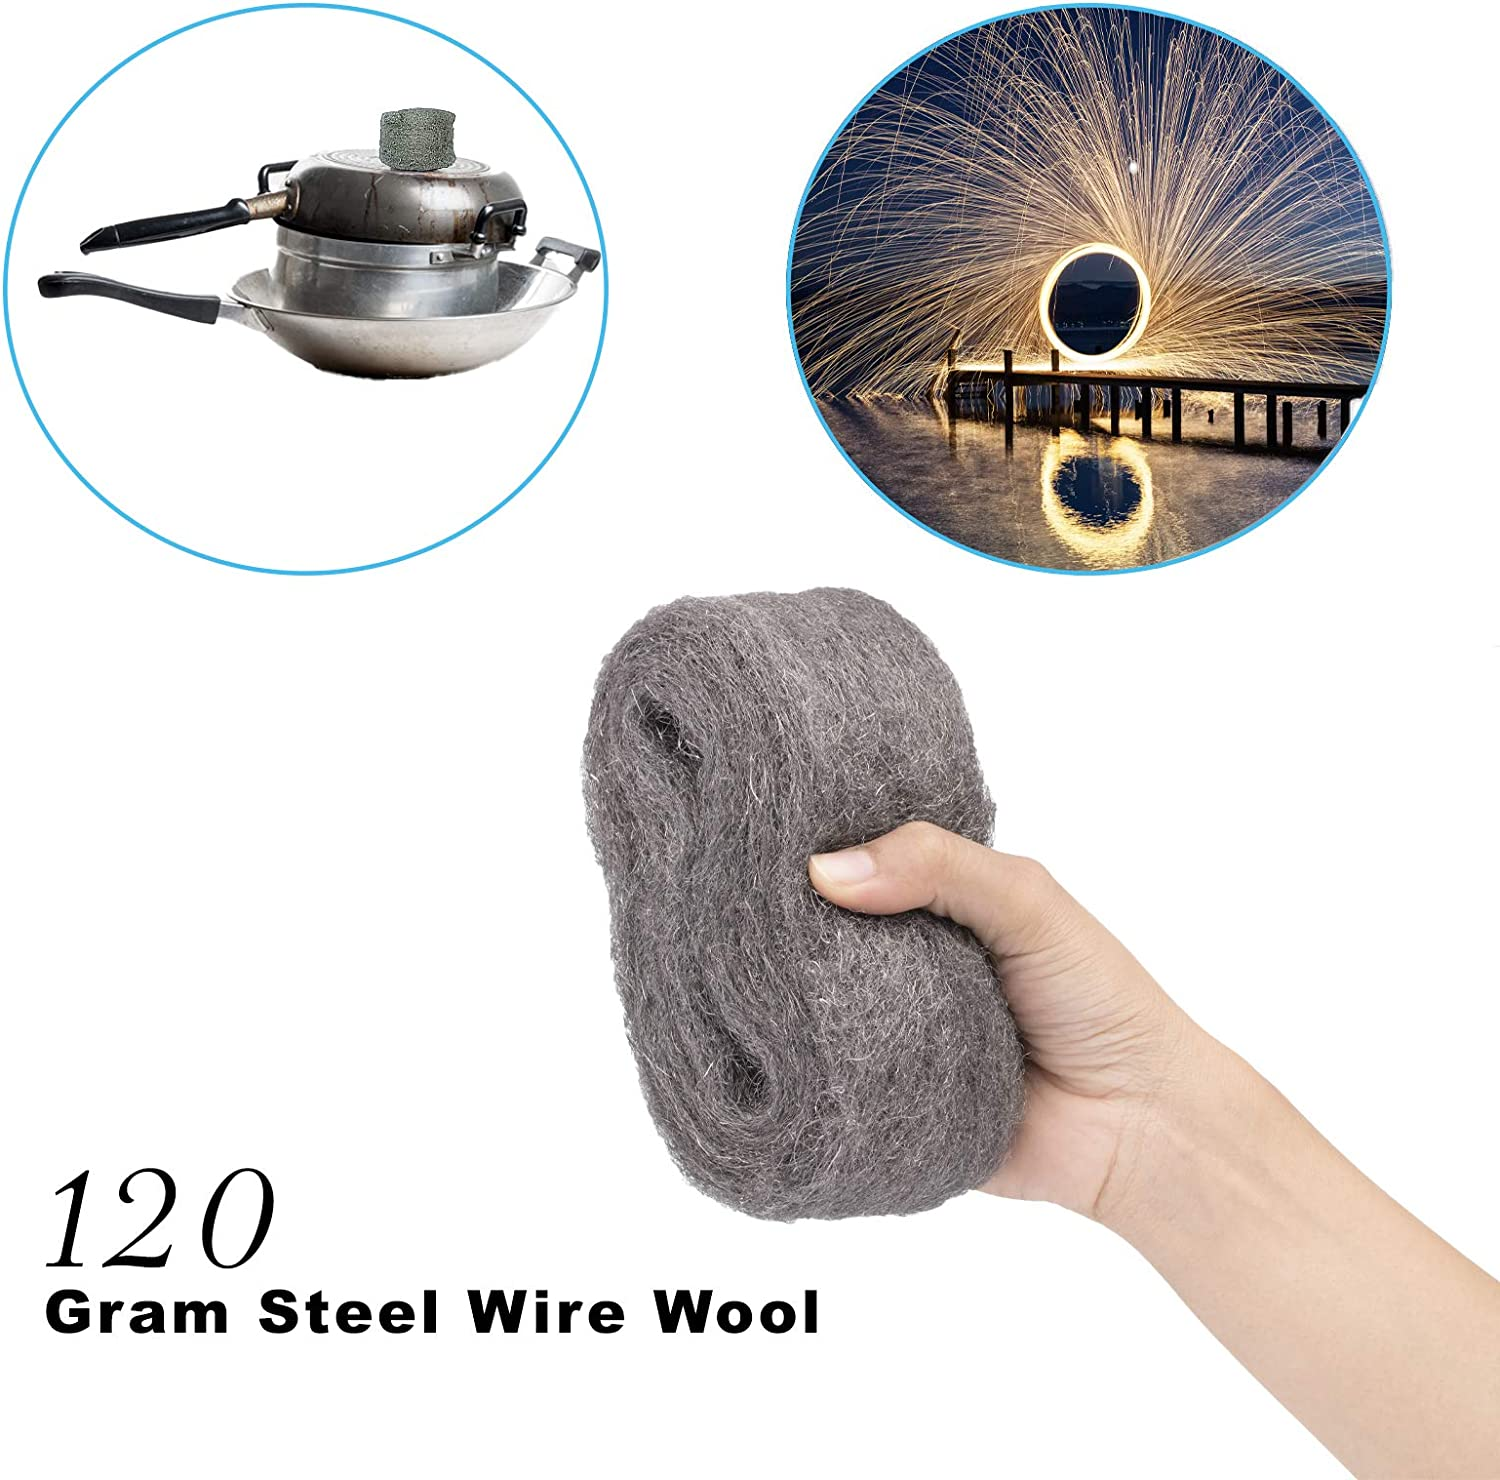 Grade 0000 Steel Wool Wire Wool for Glass Furniture Polishing Cleaning AKORD 120 g Steel Wire Wool